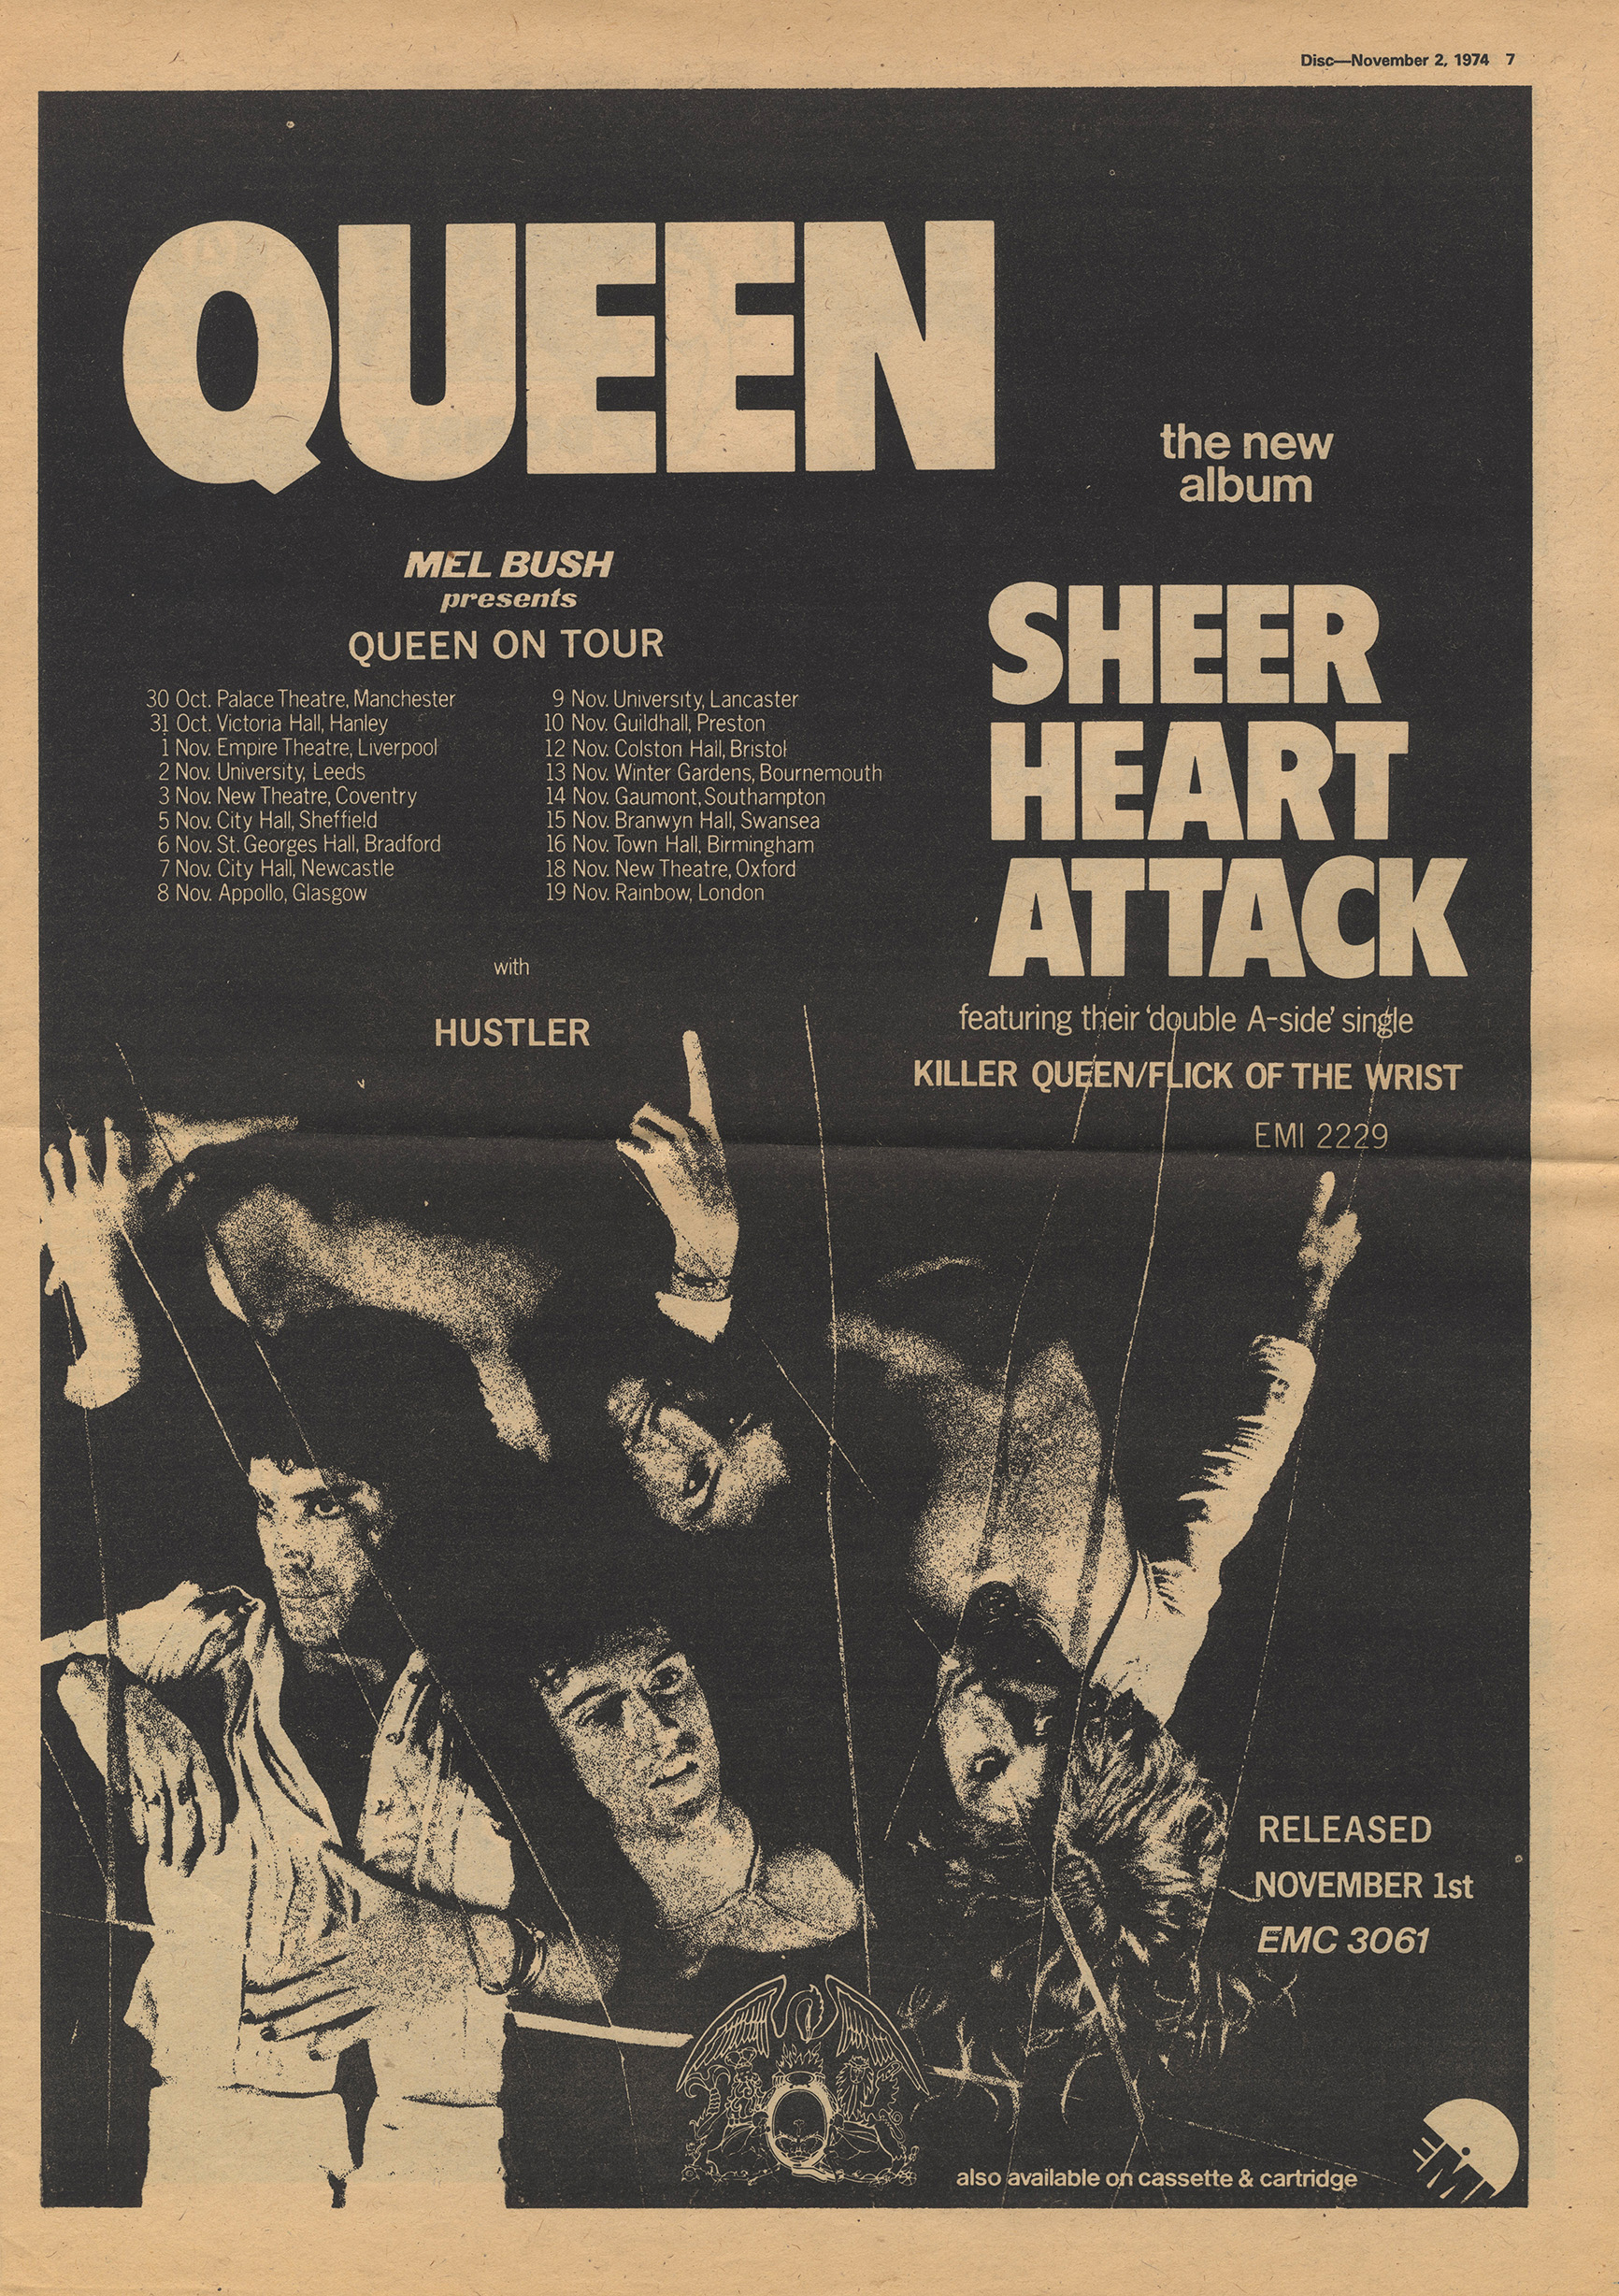 Sheer Heart Attack tour in the UK - November 1974